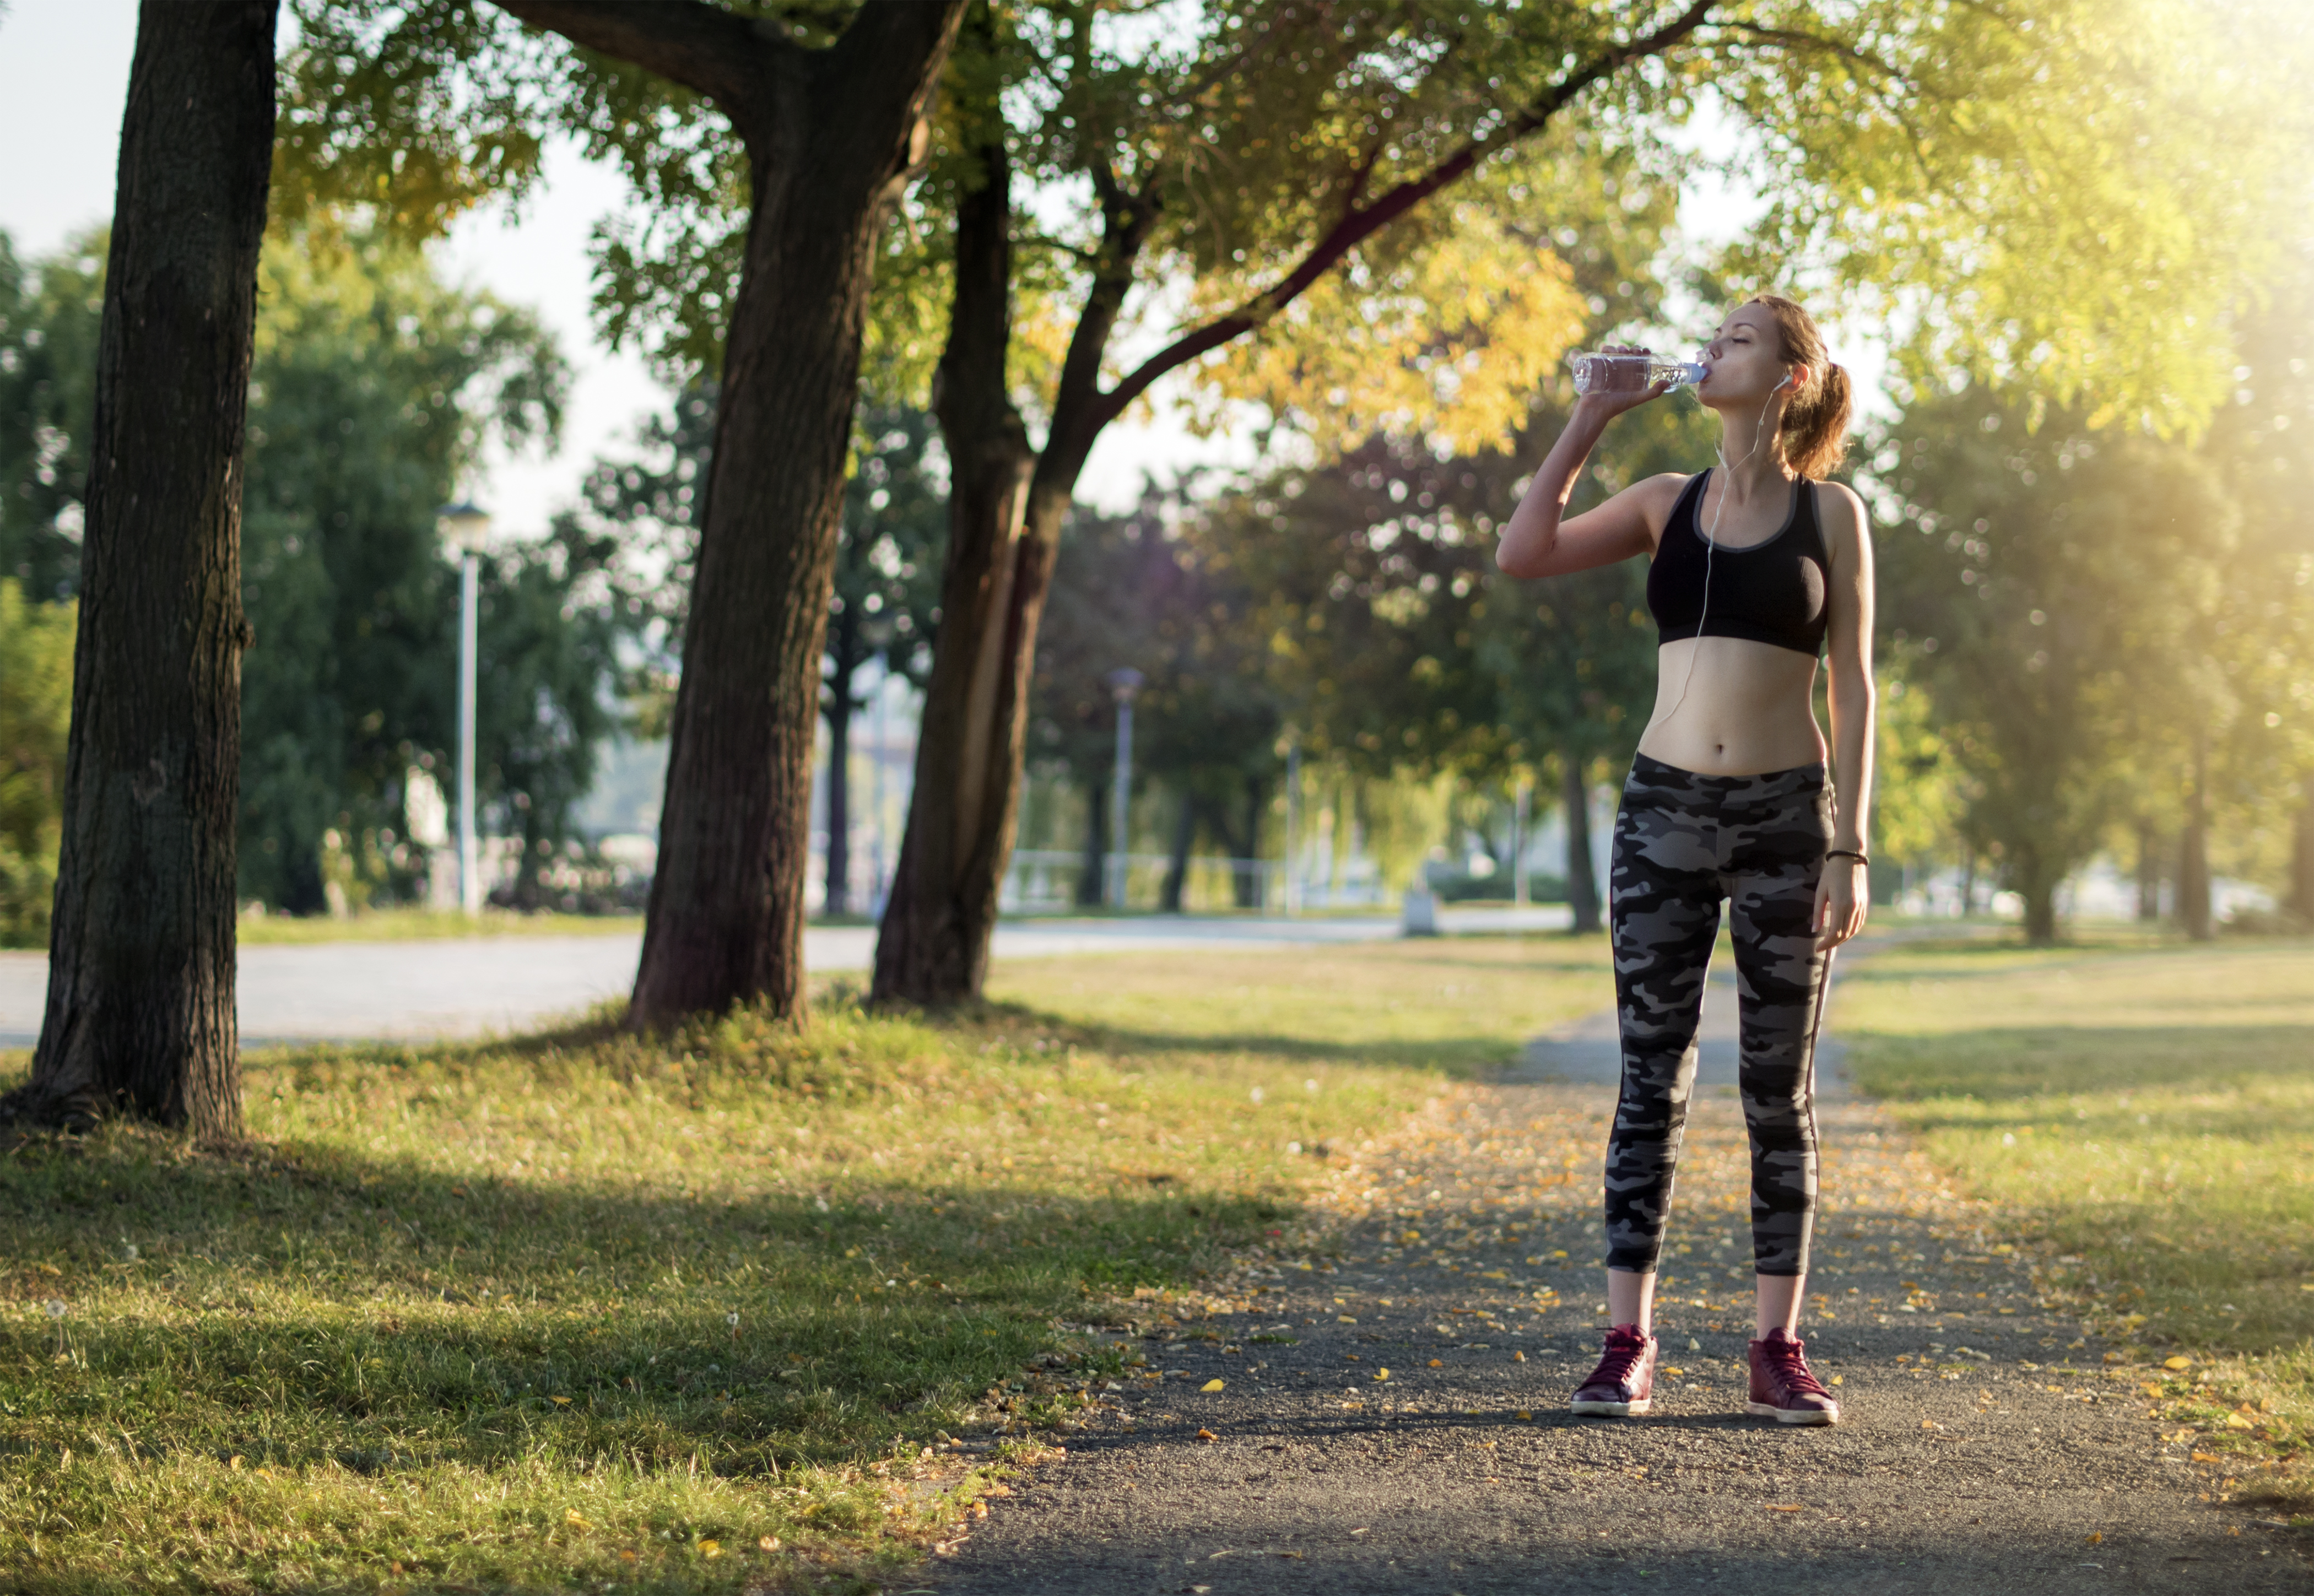 Exercising safely in hot weather conditions